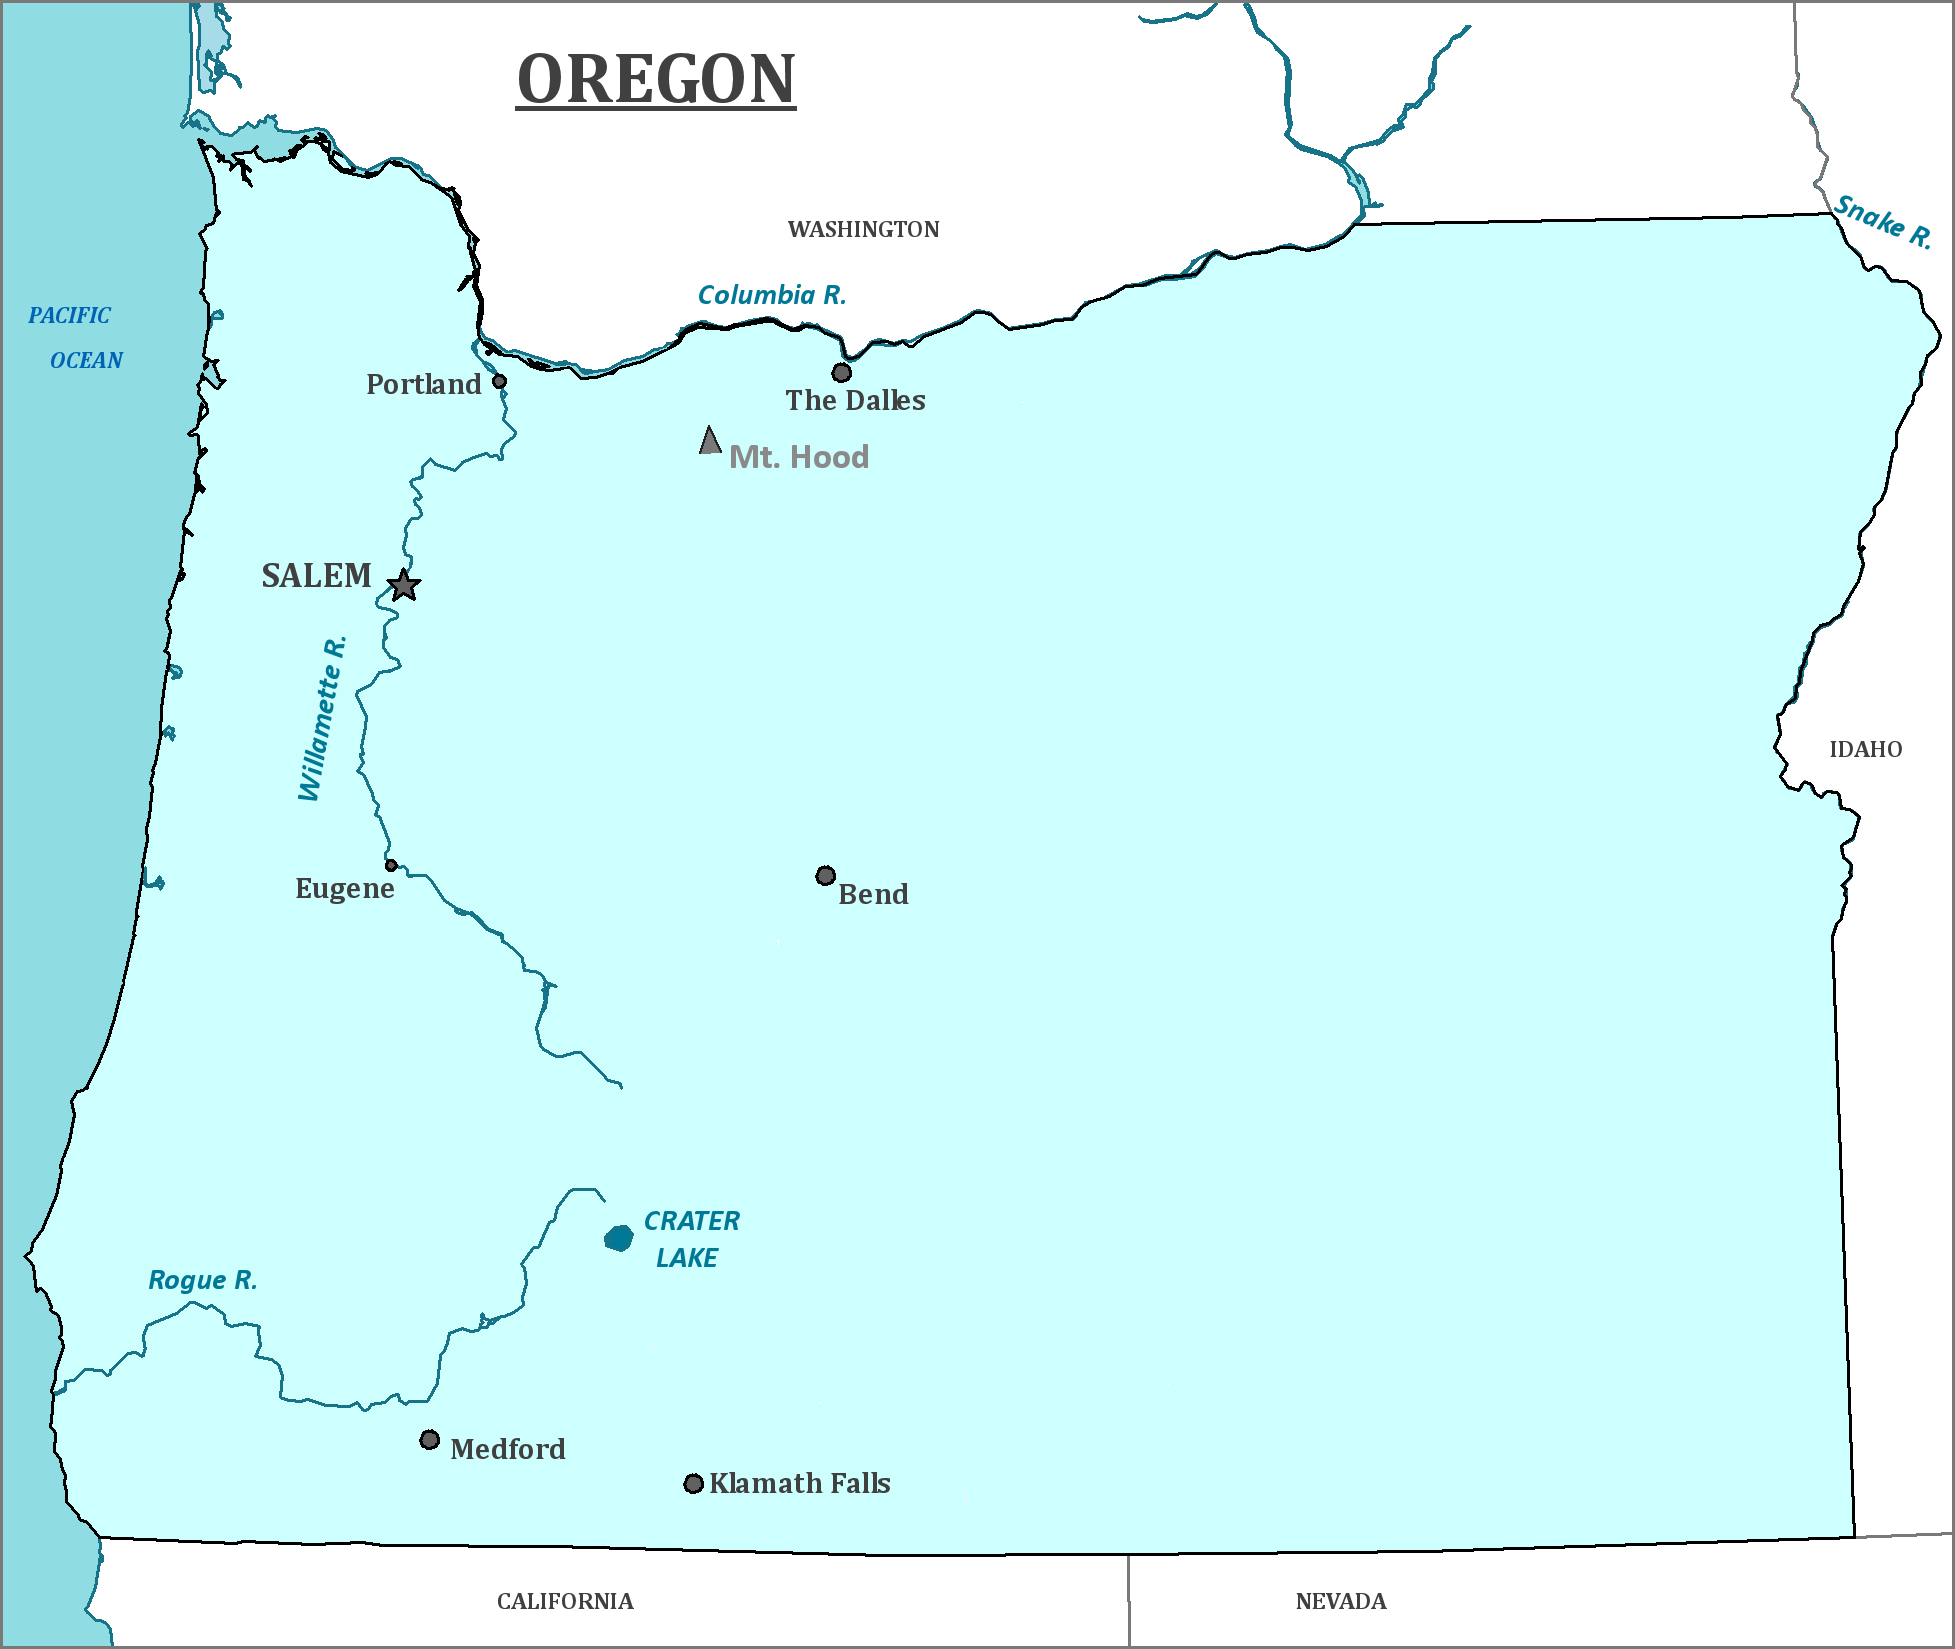 Oregon Map Image.Oregon State Map Map Of Oregon And Information About The State